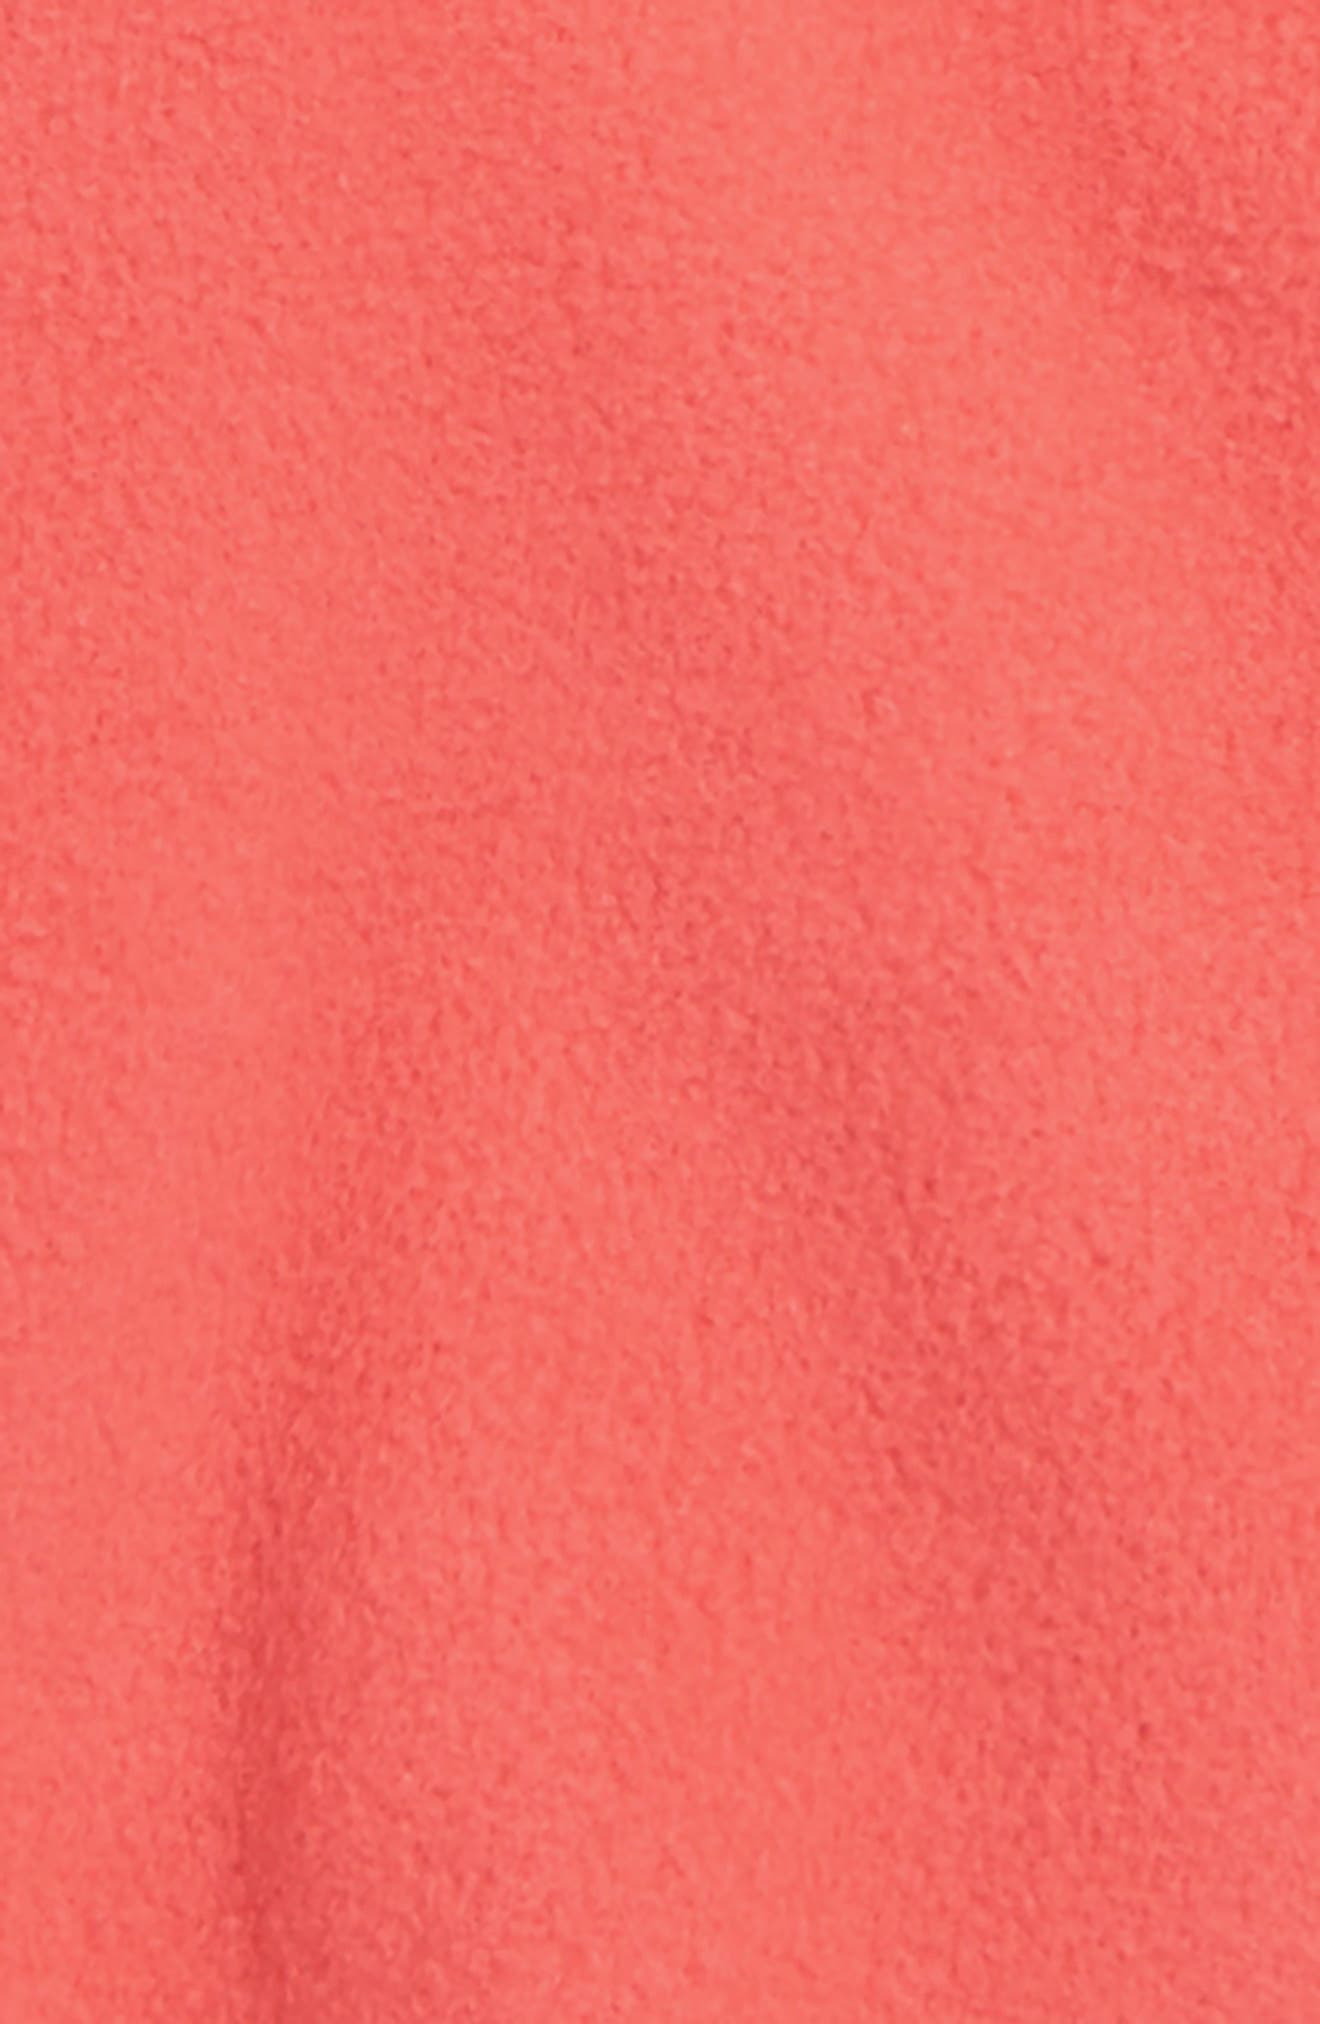 Micro D<sup>®</sup> Snap-T<sup>®</sup> Fleece Jacket,                             Alternate thumbnail 2, color,                             SPICED CORAL